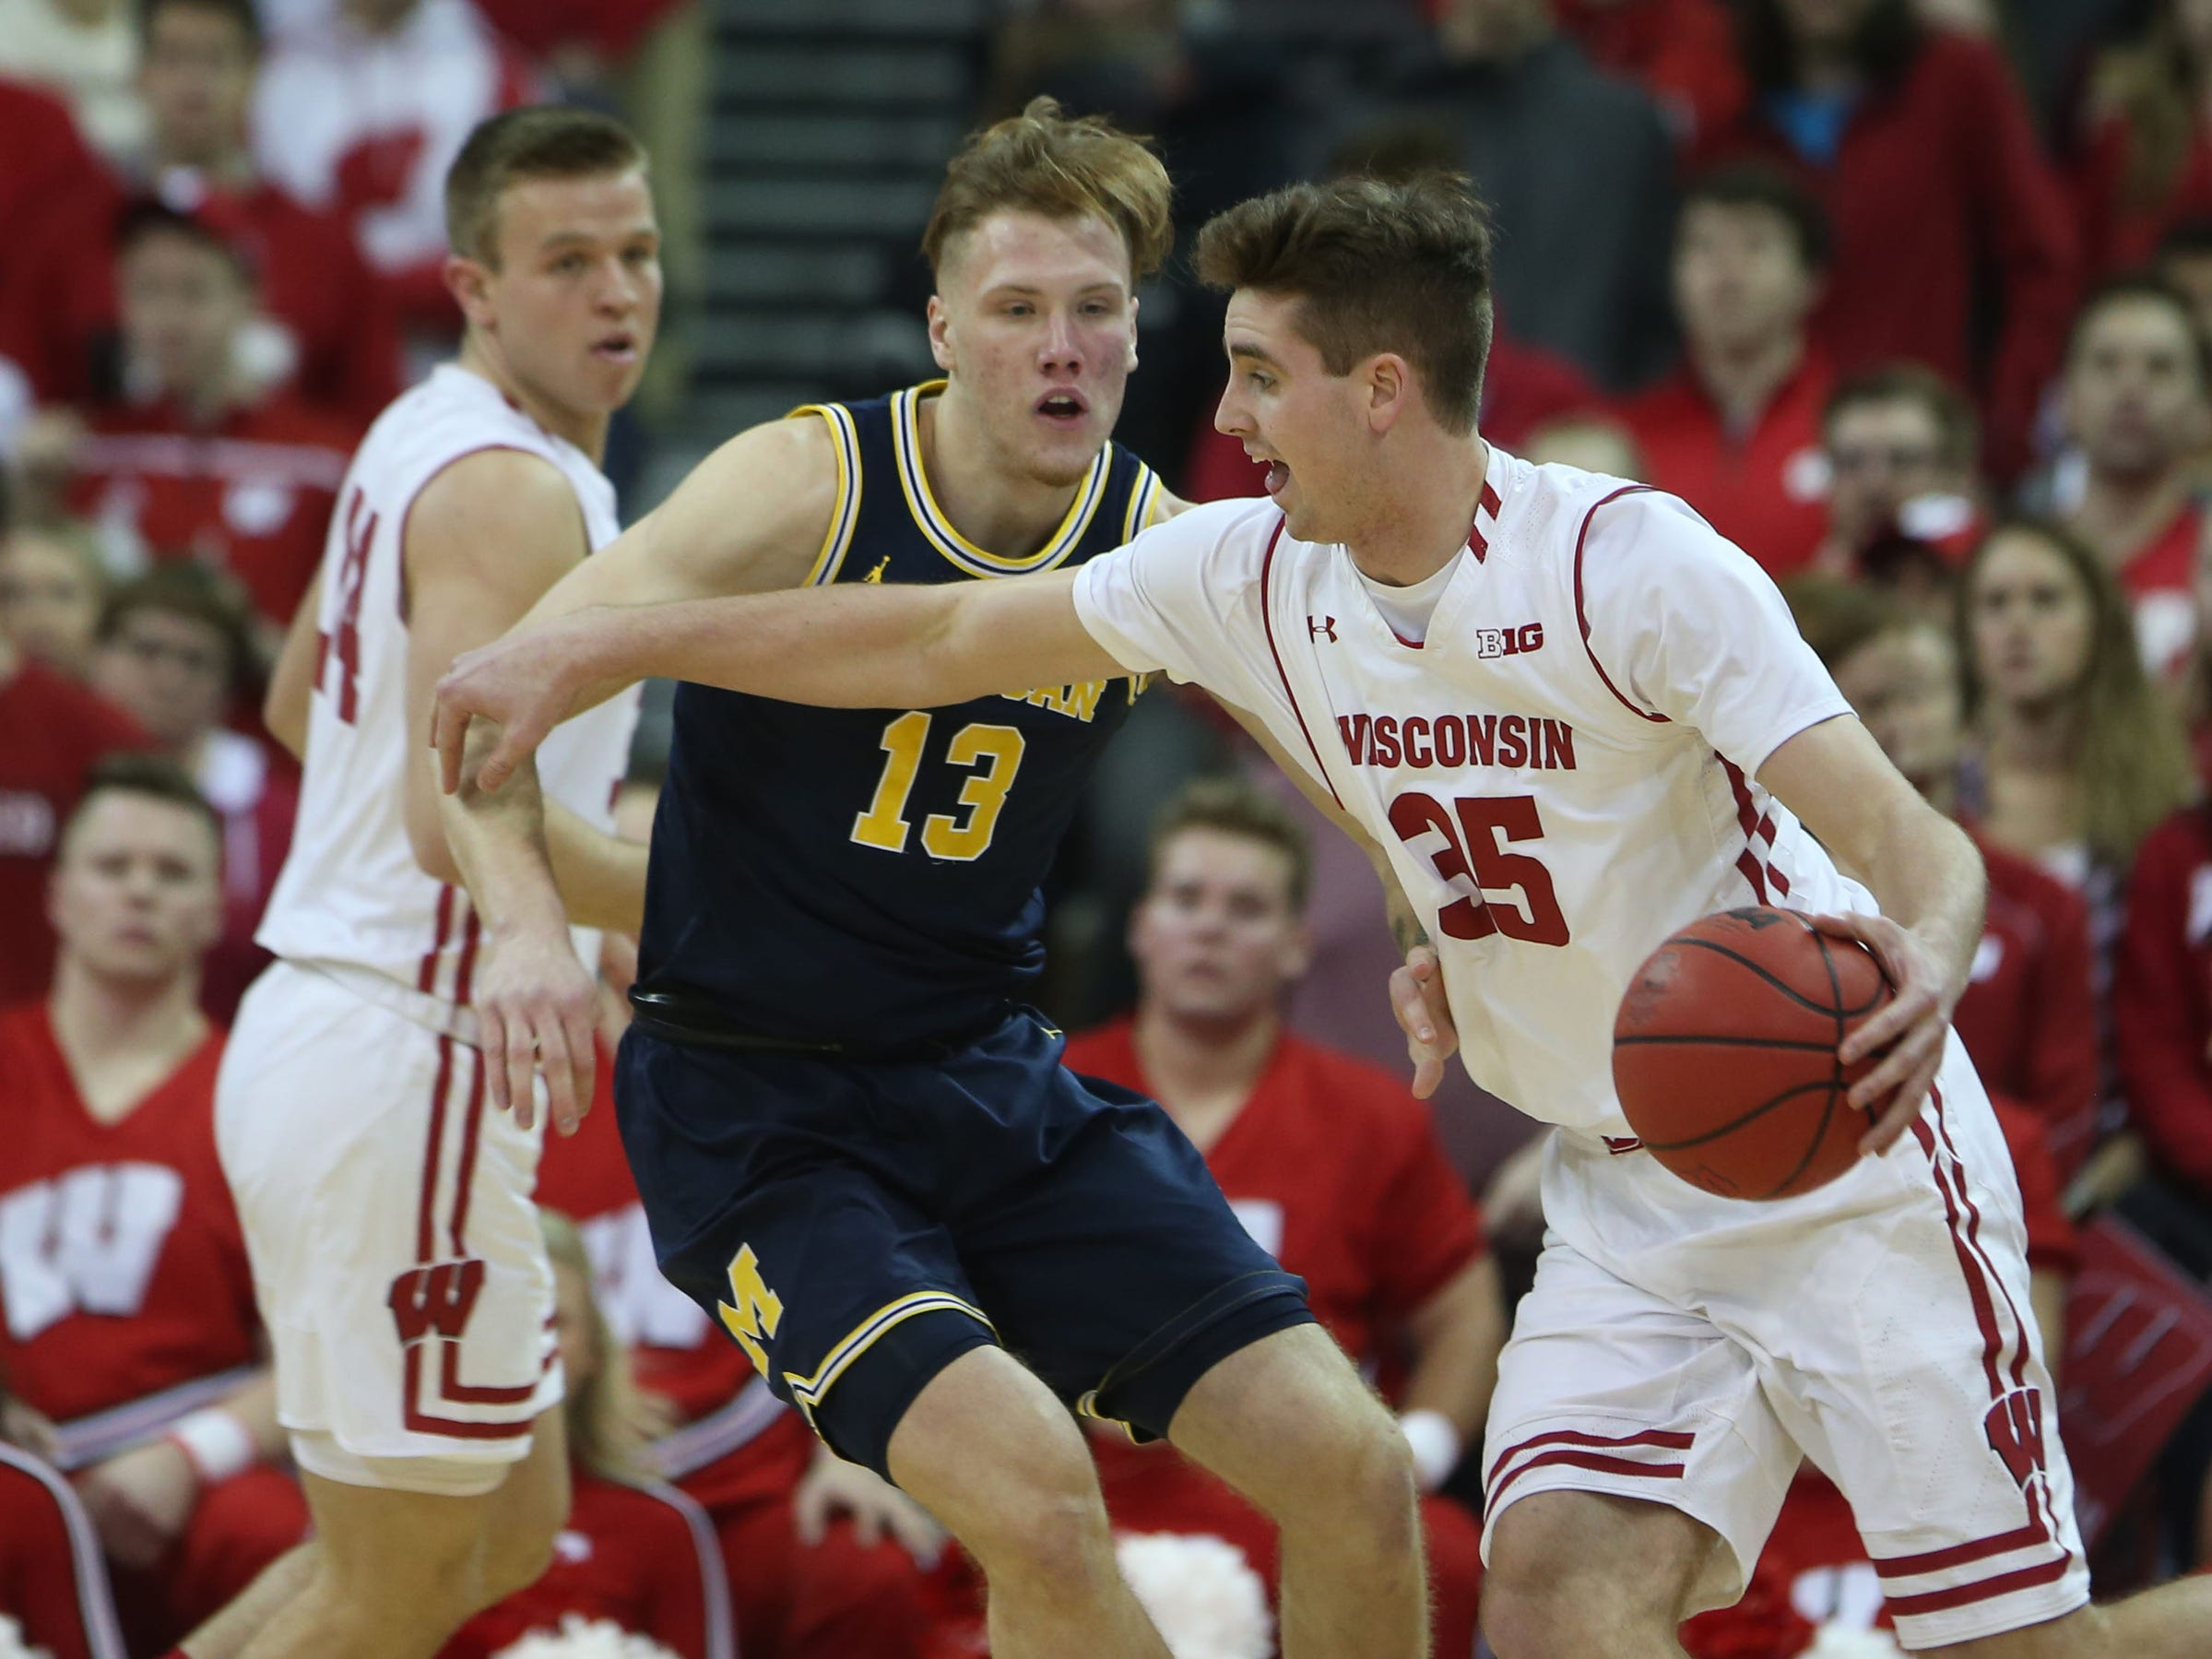 Wisconsin Badgers forward Nate Reuvers works the ball against Michigan Wolverines forward Ignas Brazdeikis at the Kohl Center, Jan. 19, 2019.